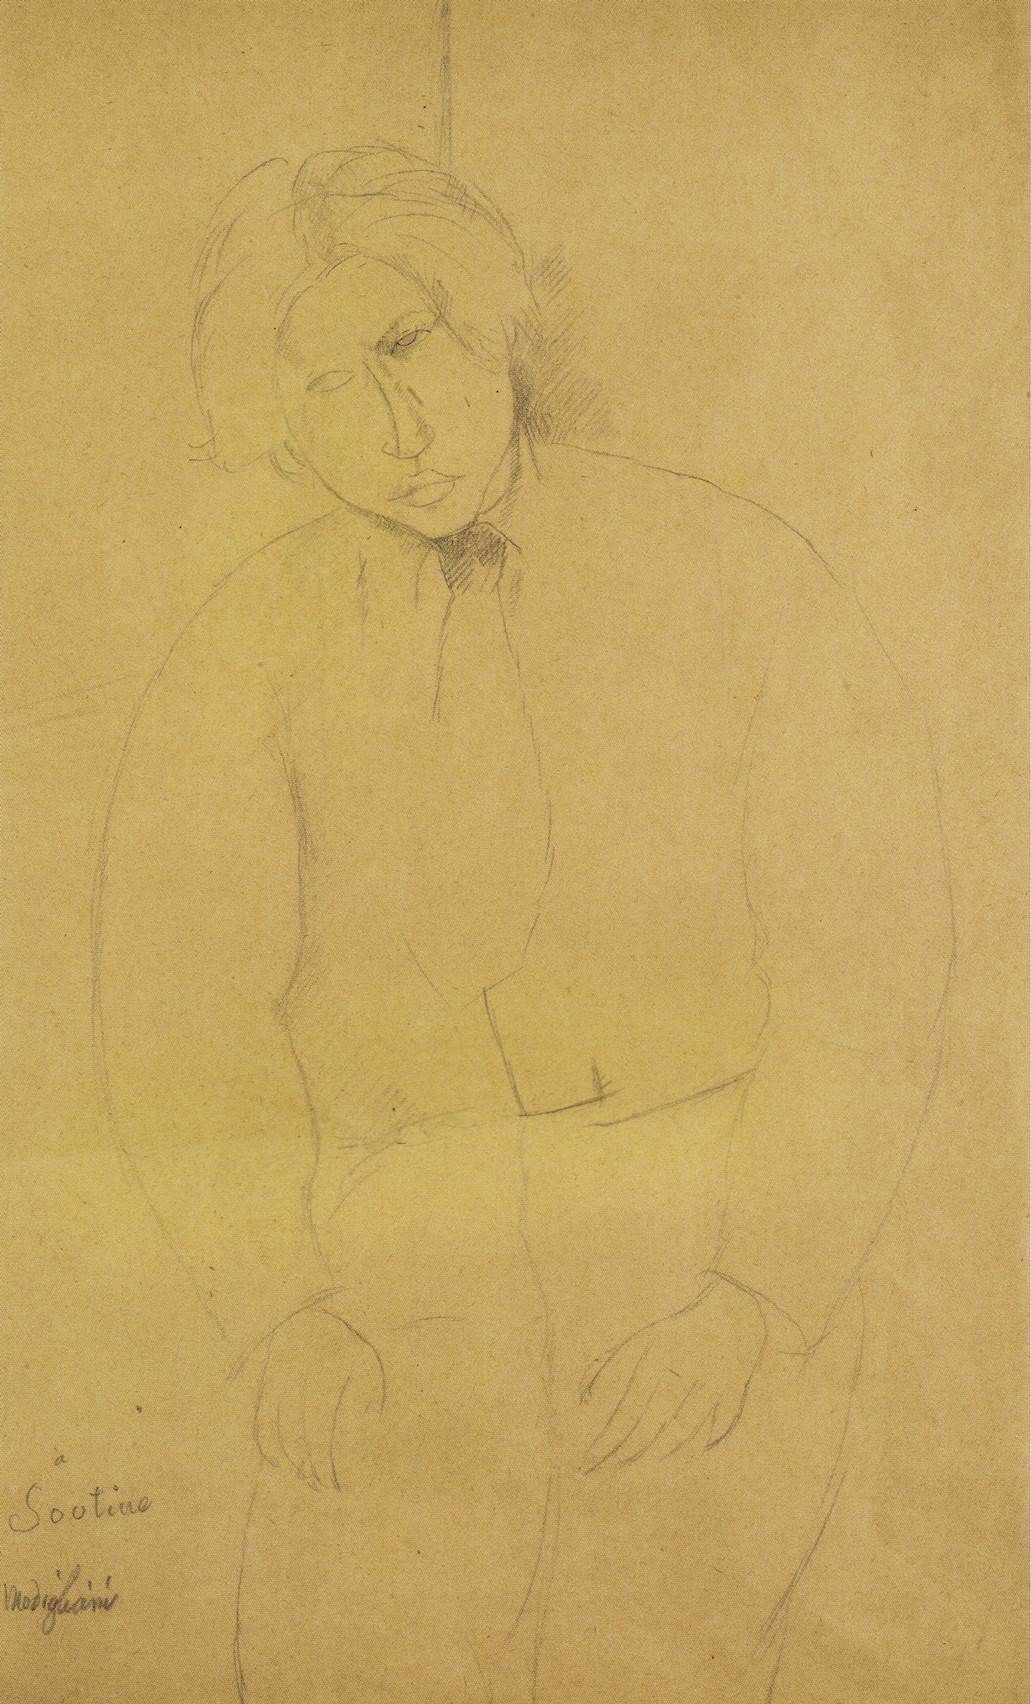 "Amedeo Modigliani ""Portrait of Haim Soutine"" pen, paper, 42x26 sm, 1916, collection Netter."